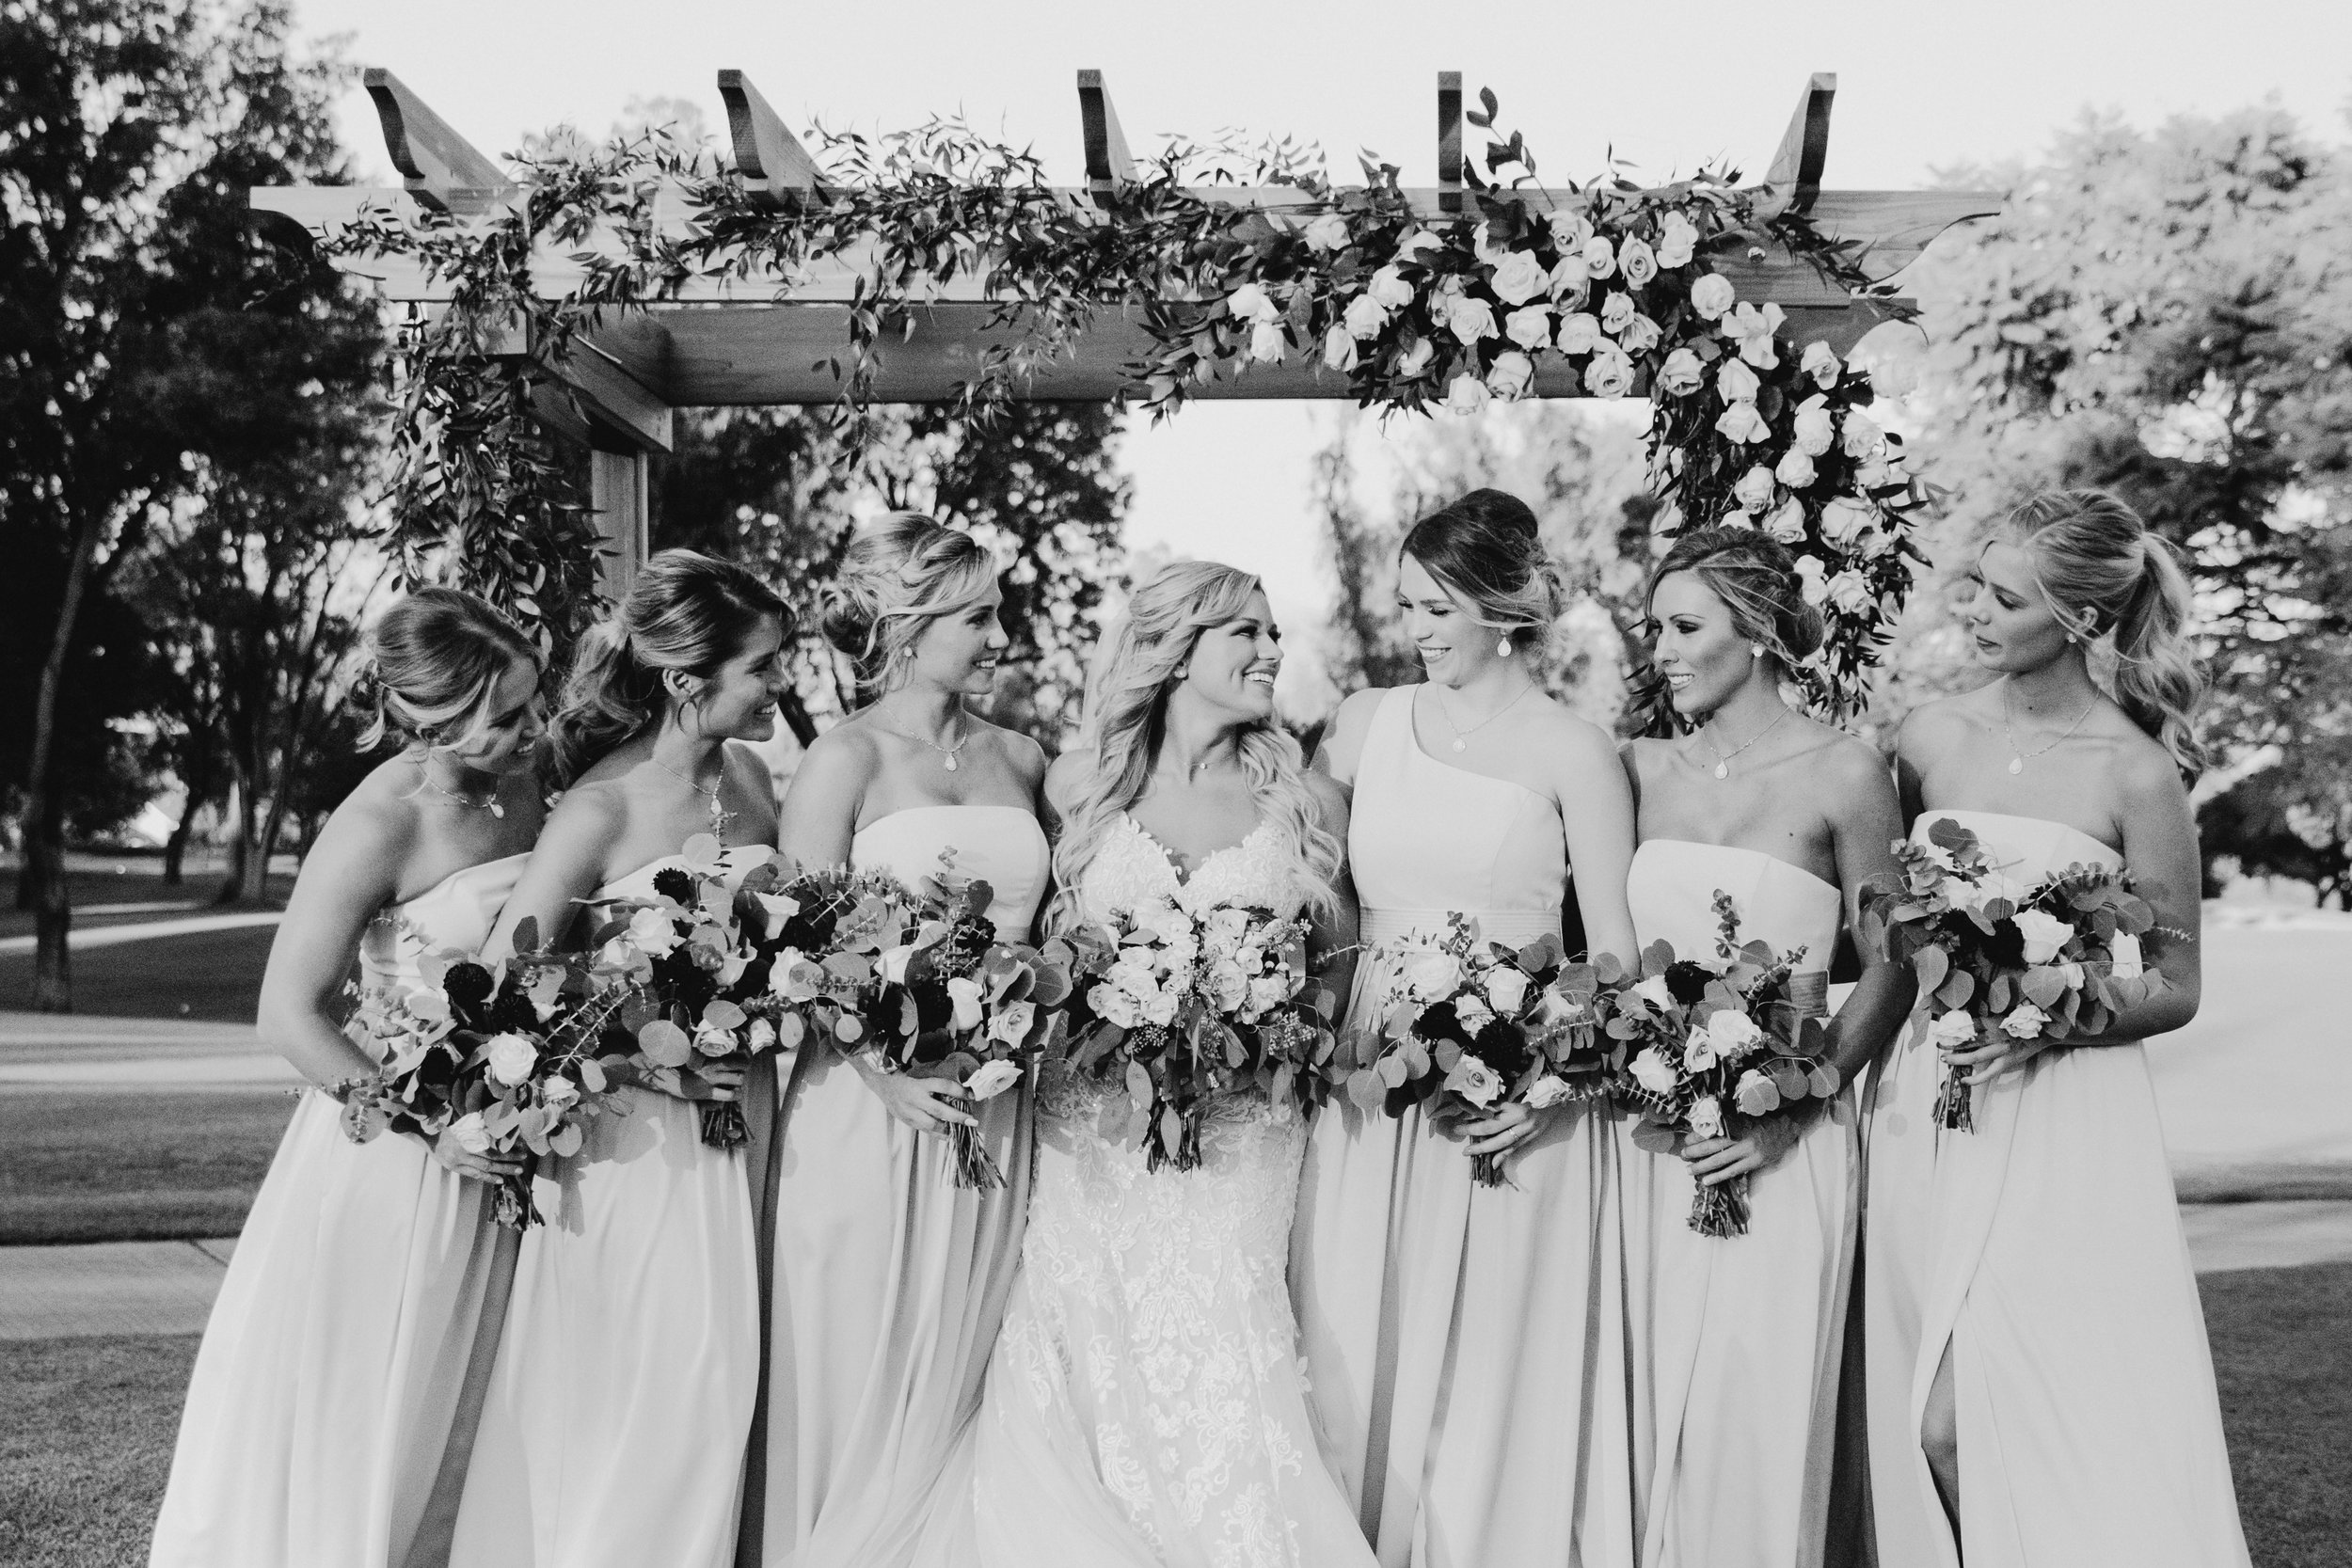 DianaLakePhoto-A+C-Wedding-Bridesmaids_64.jpg